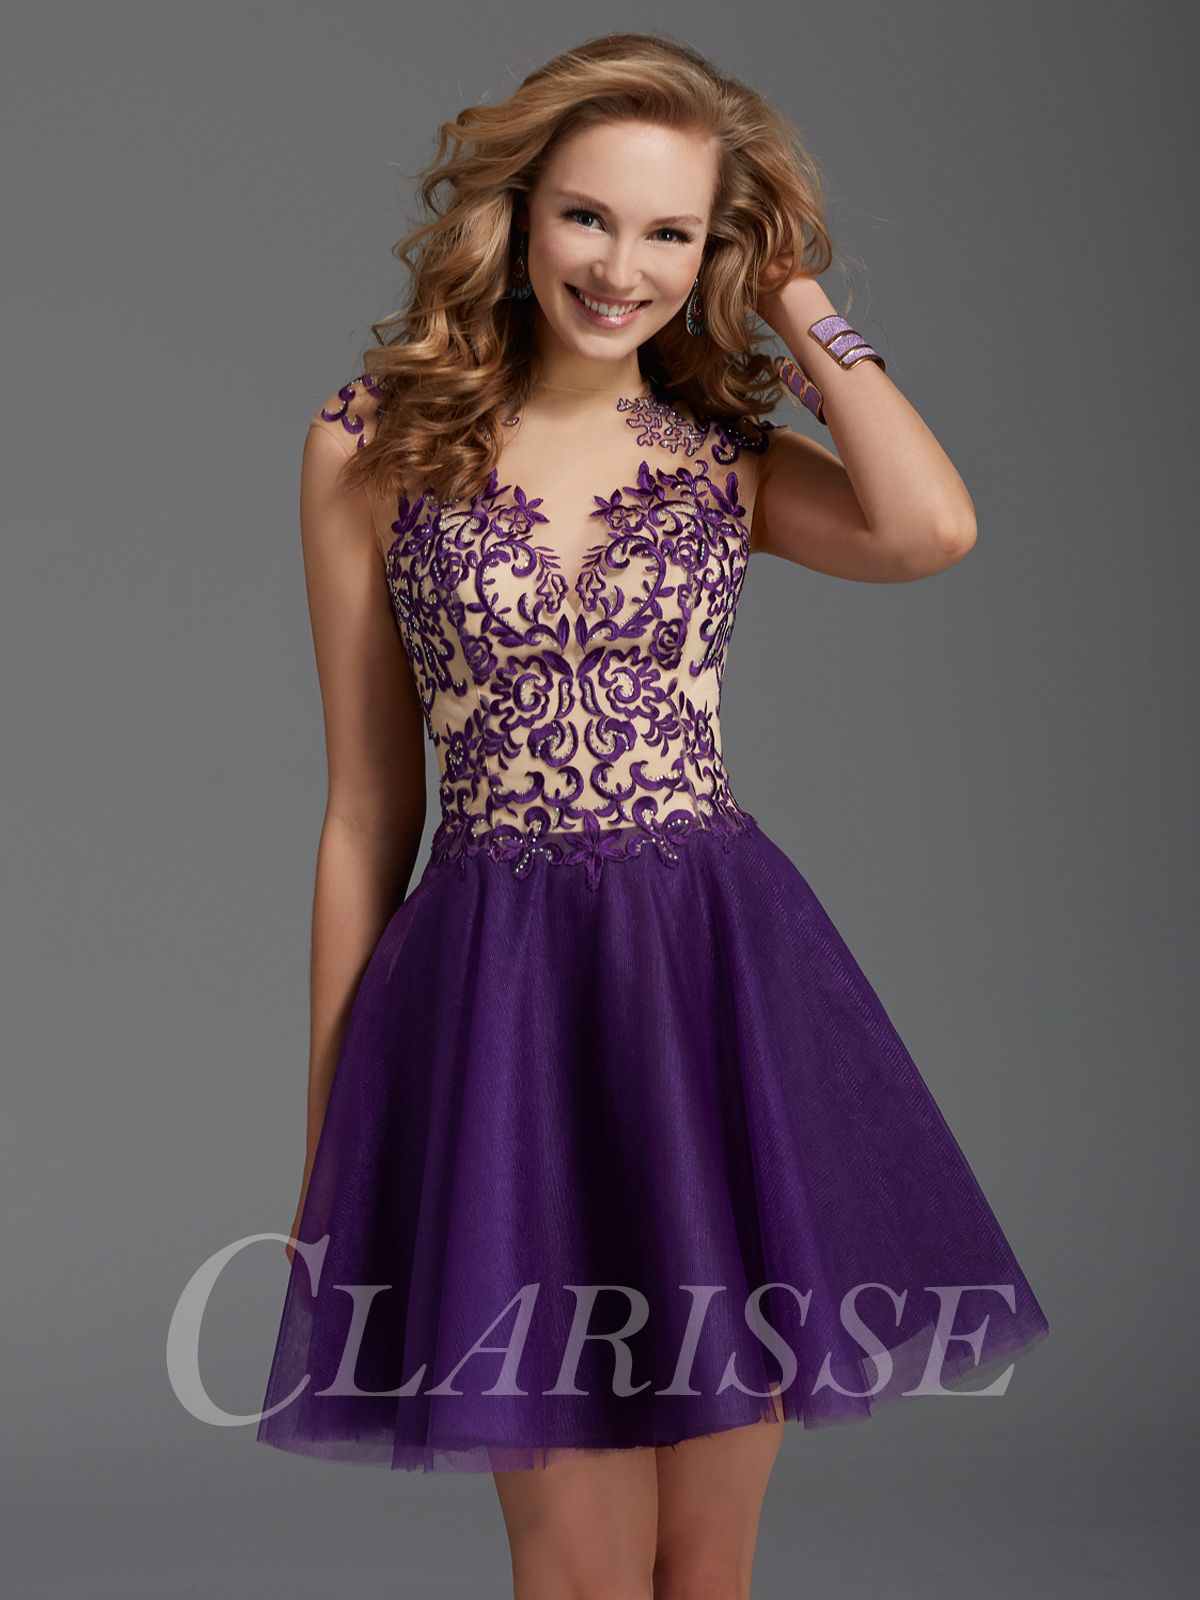 Clarisse Short Formal Dress 2918 | Modest homecoming ...